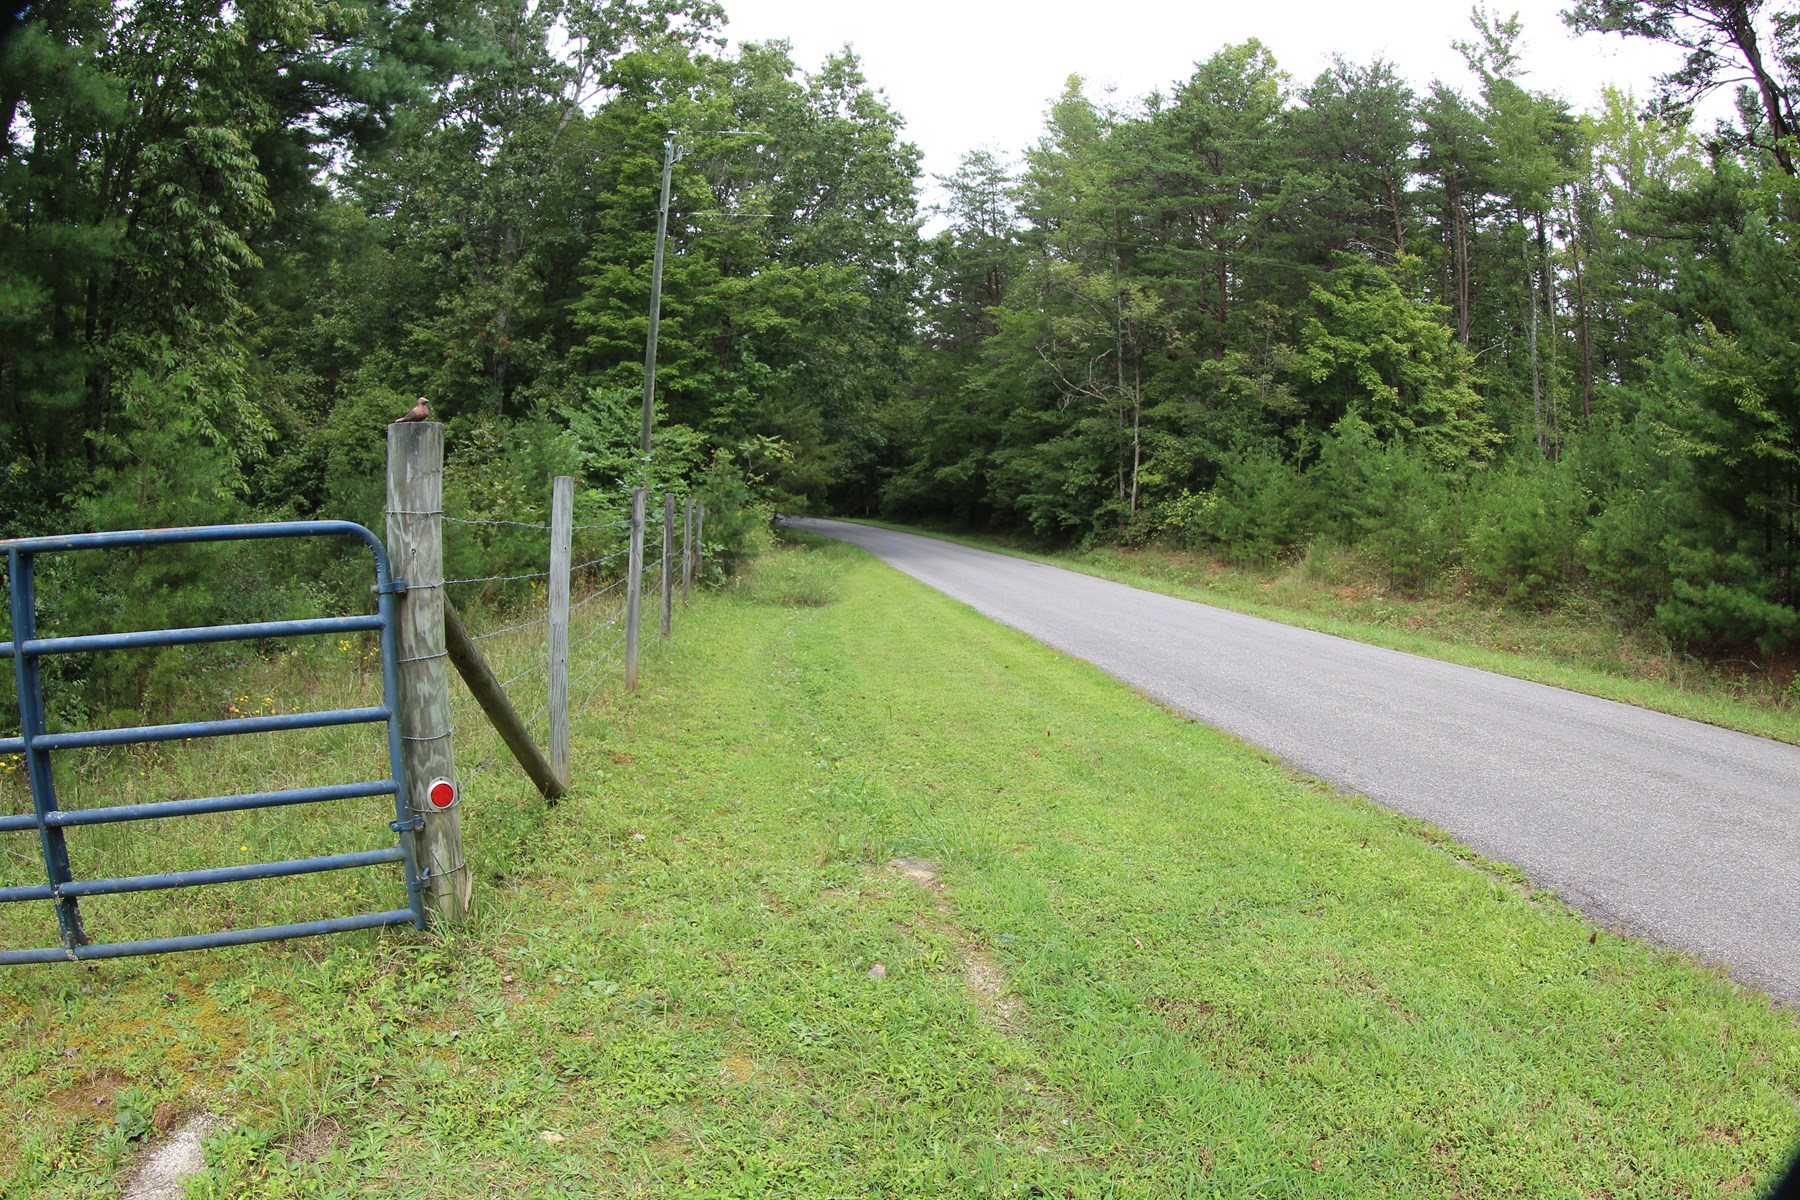 8.61 ACRES OF LAND FOR SELL  IN PATRICK COUNTY, VIRGINIA